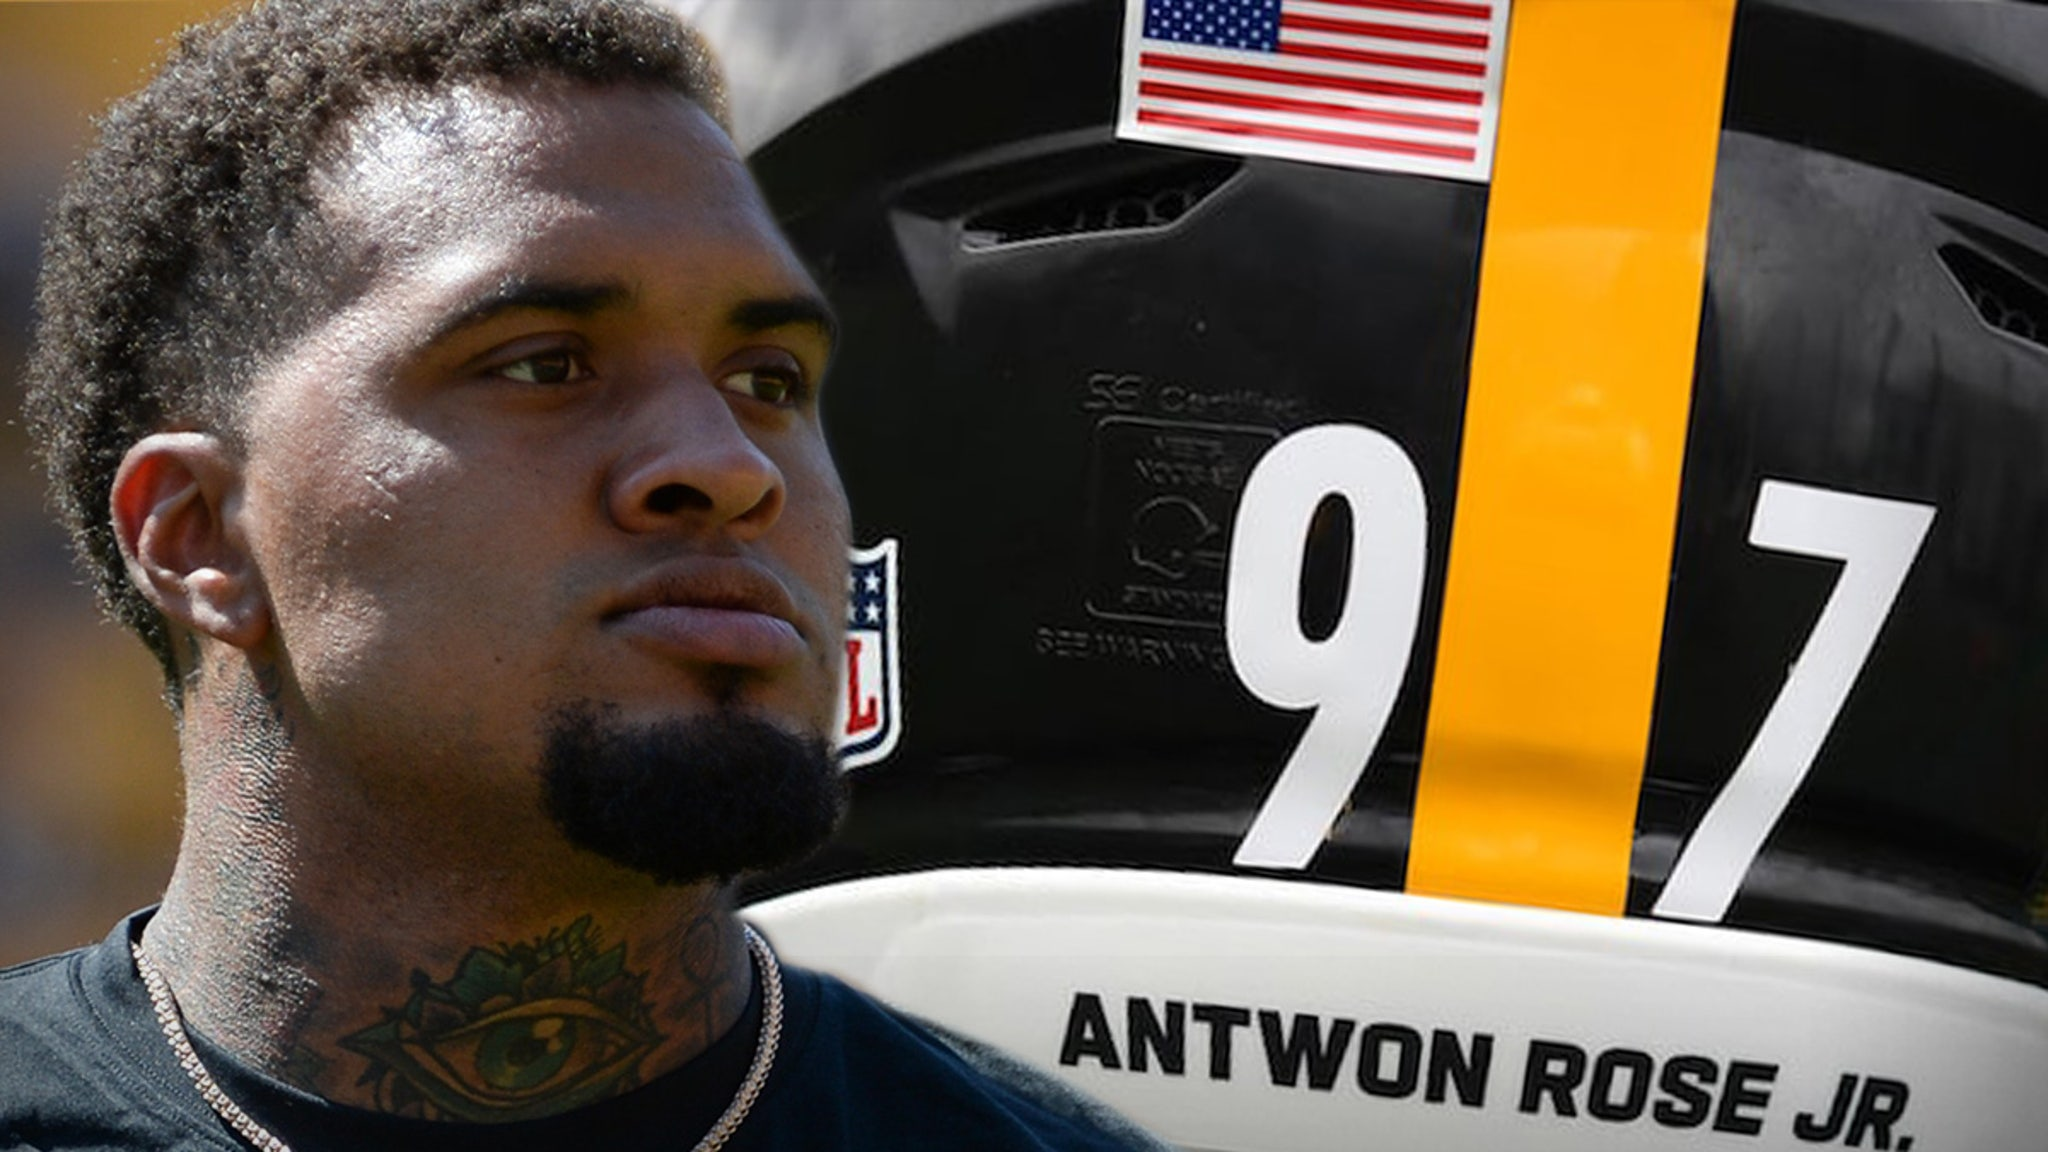 Steelers' Maurkice Pouncey Regrets Antwon Rose Helmet Tribute ... 'Unaware of Whole Story'